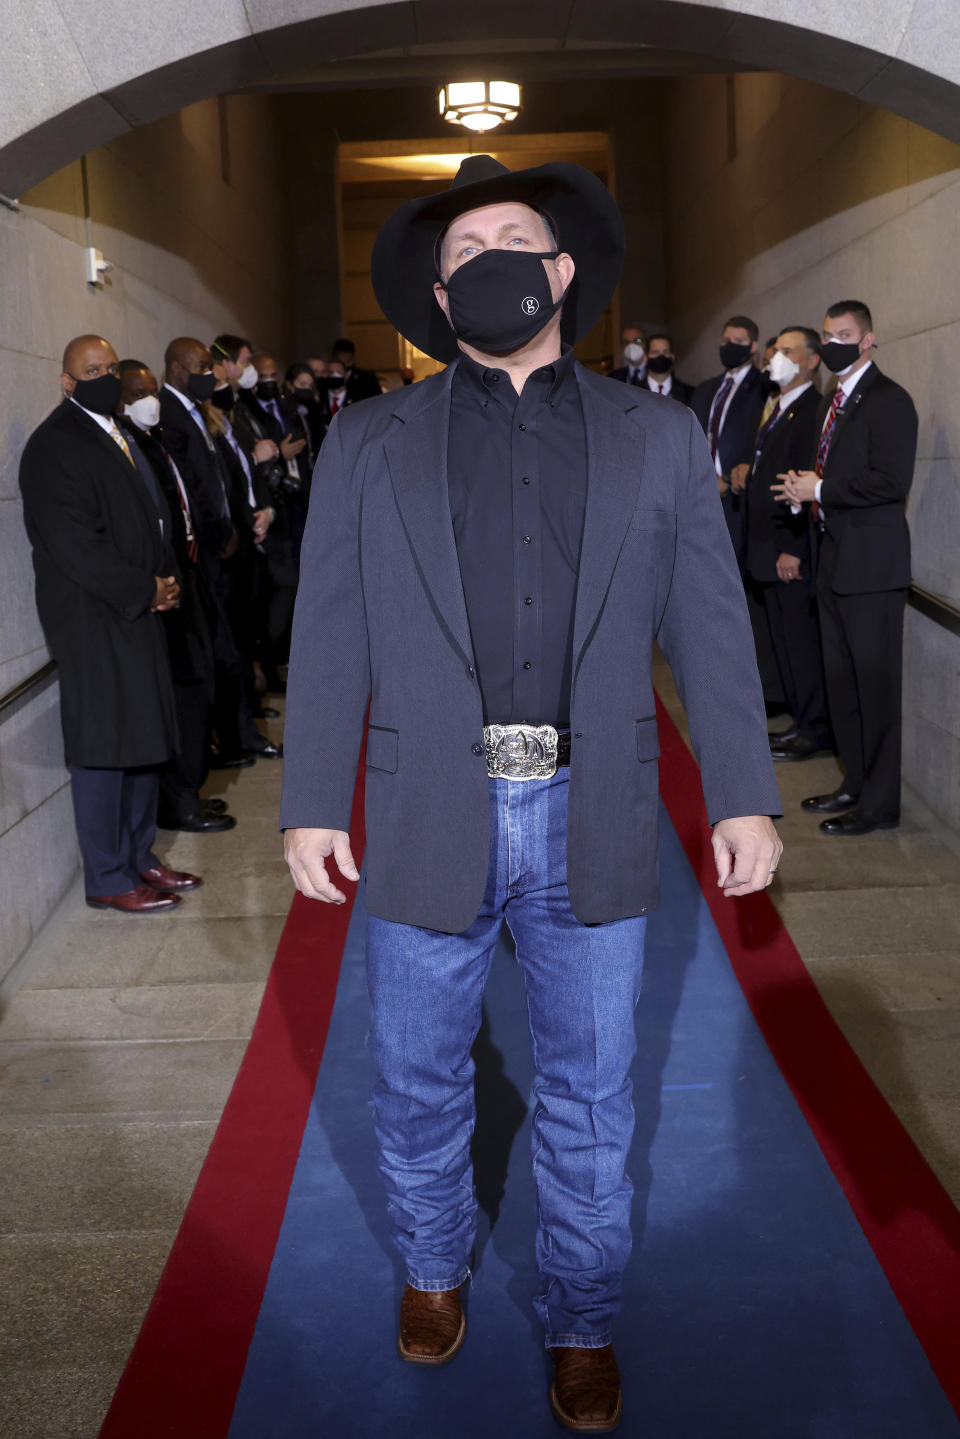 Garth Brooks arrives for the 59th Presidential Inauguration at the U.S. Capitol for President-elect Joe Biden in Washington, Wednesday, Jan. 20, 2021. (Win McNamee/Pool Photo via AP)